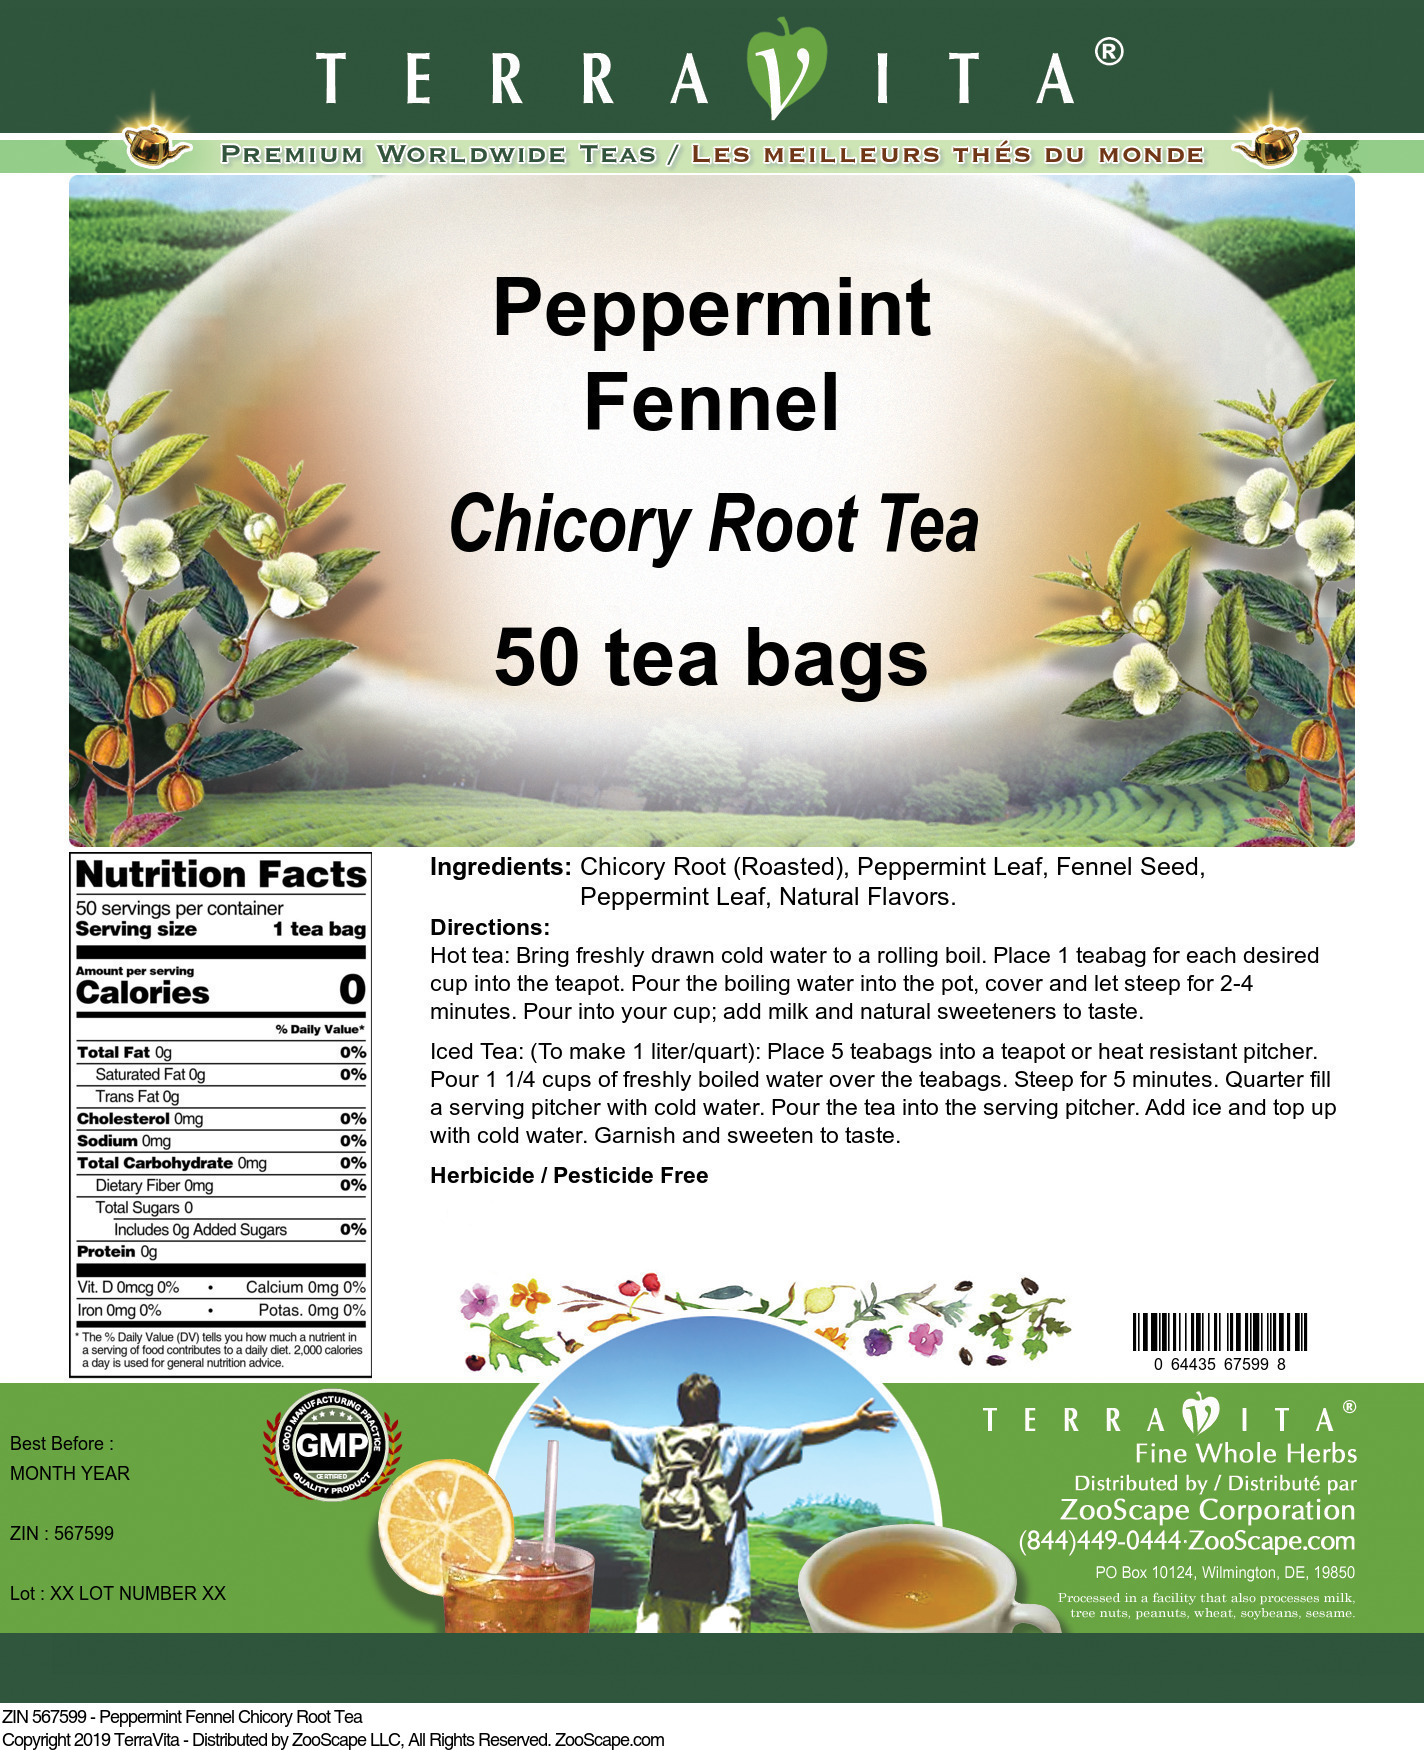 Peppermint Fennel Chicory Root Tea